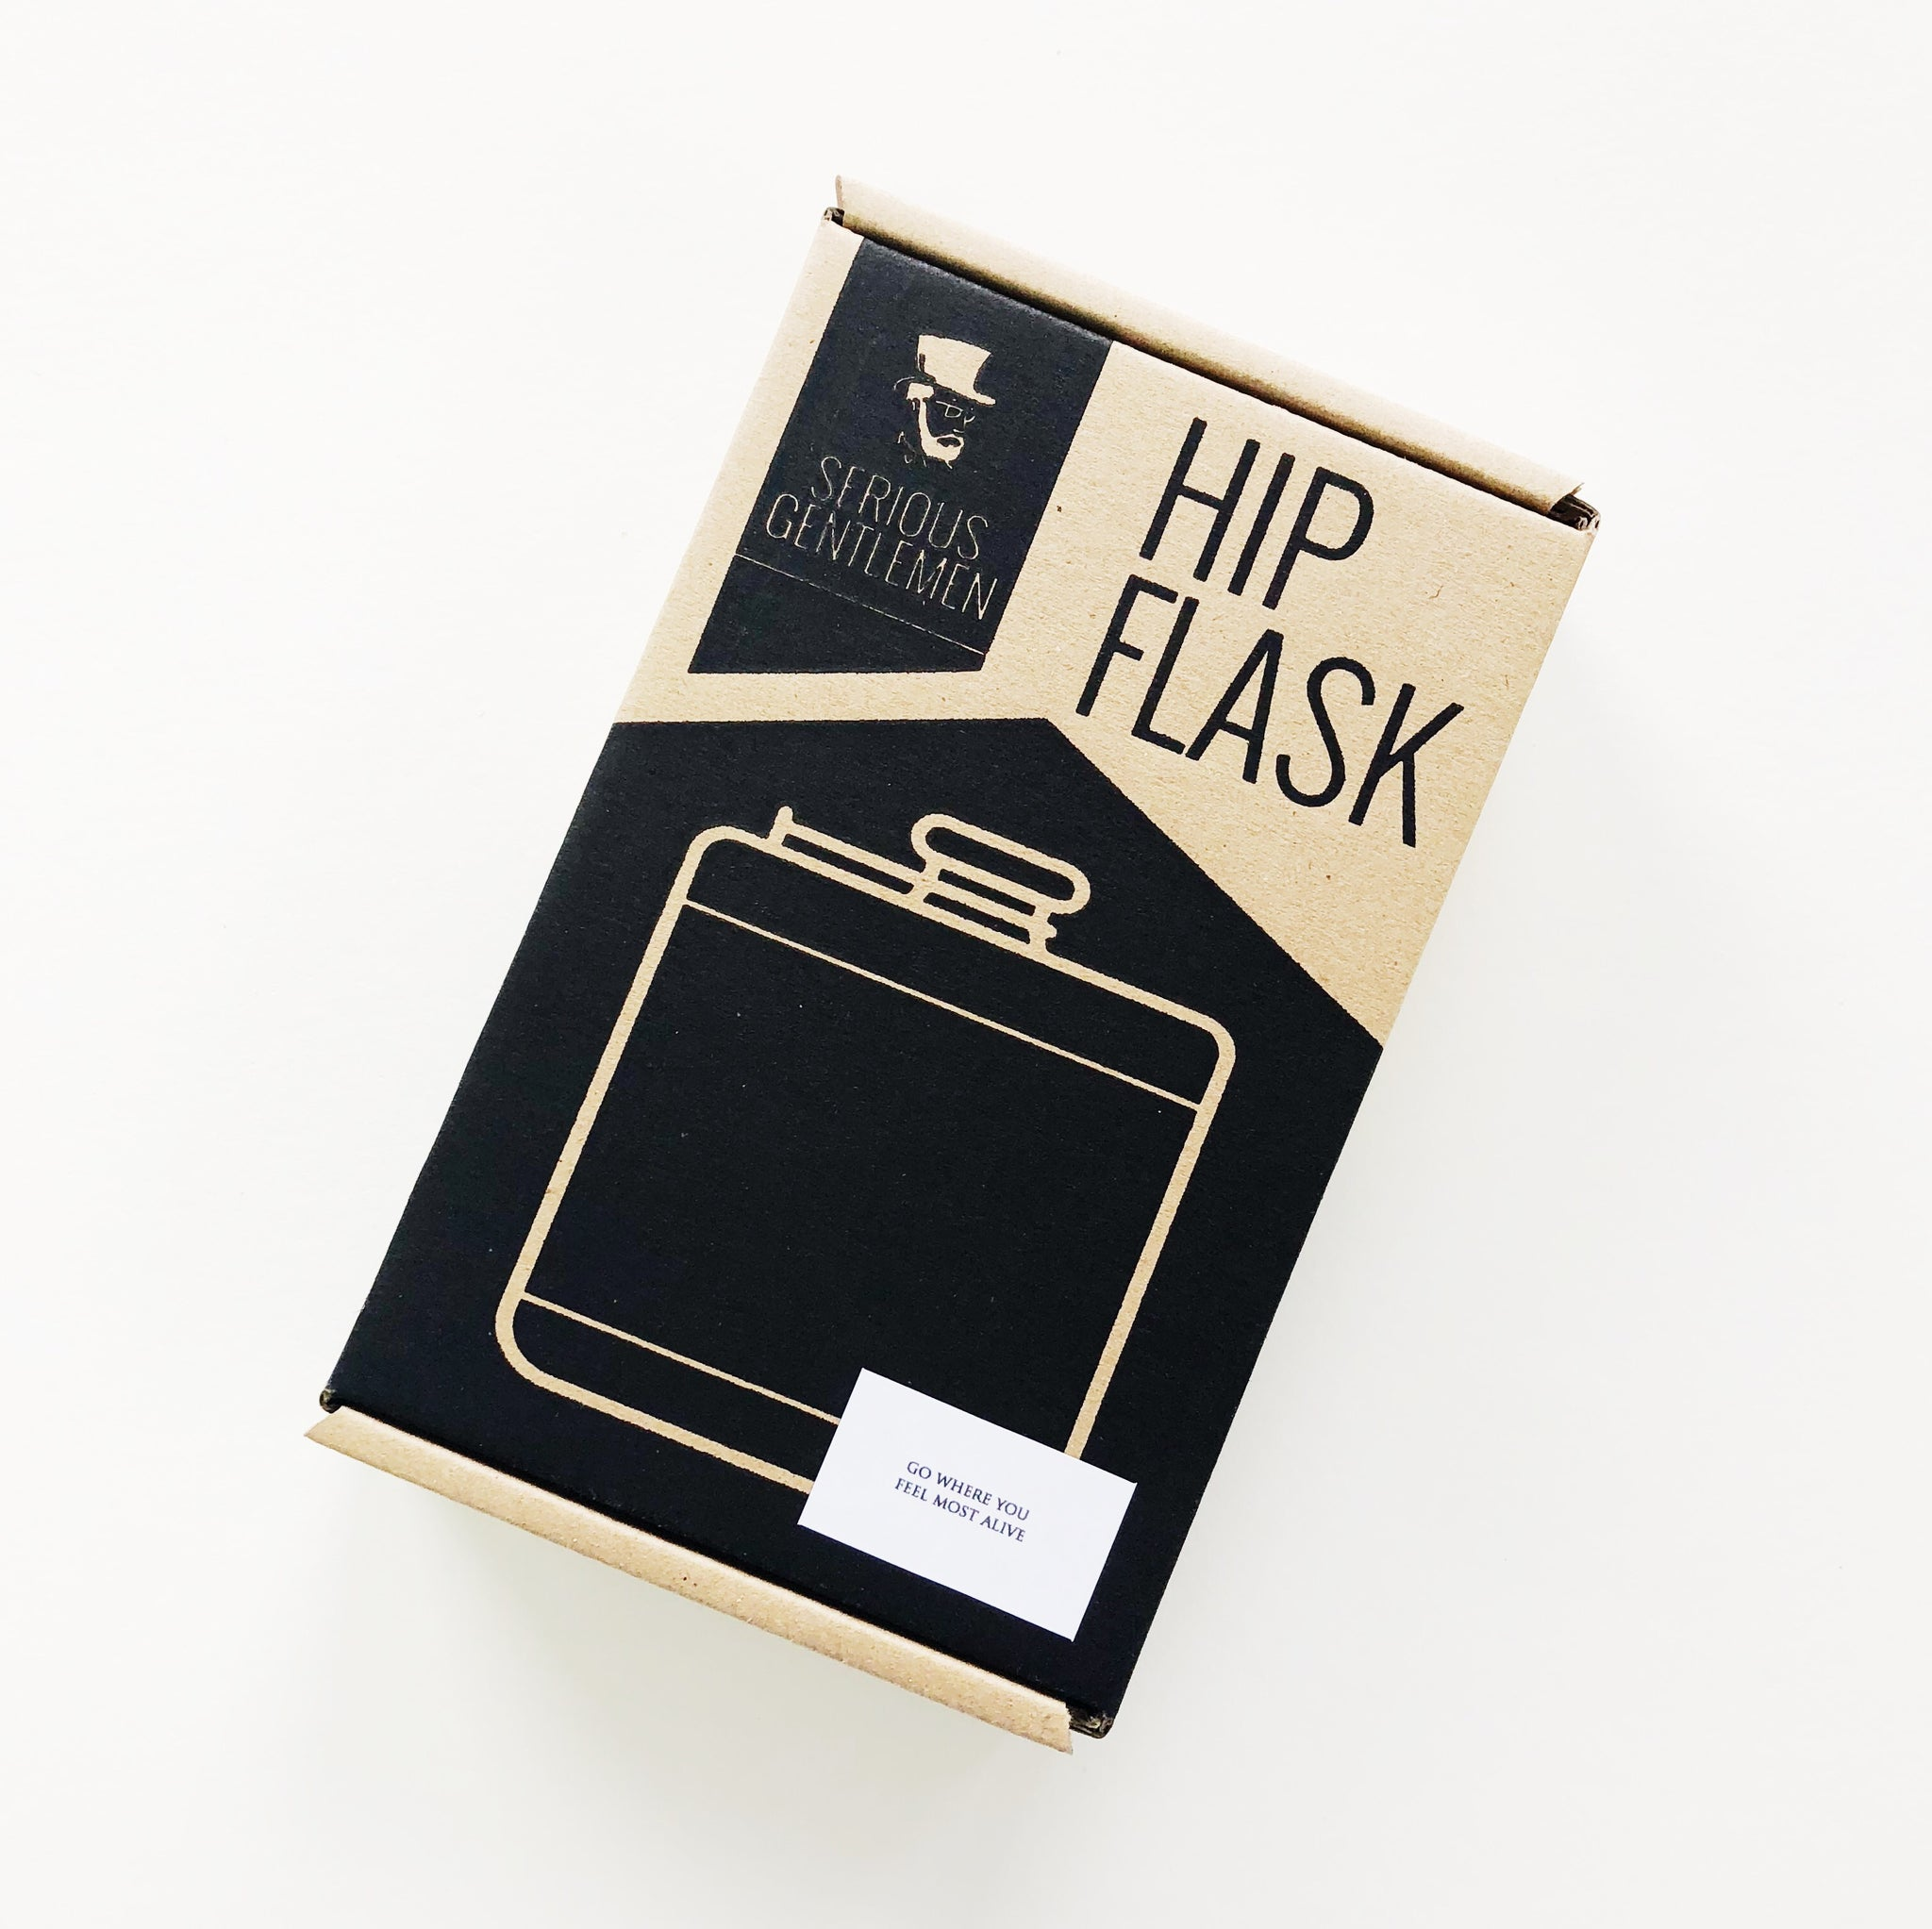 8 oz Flask - Go where you feel most alive